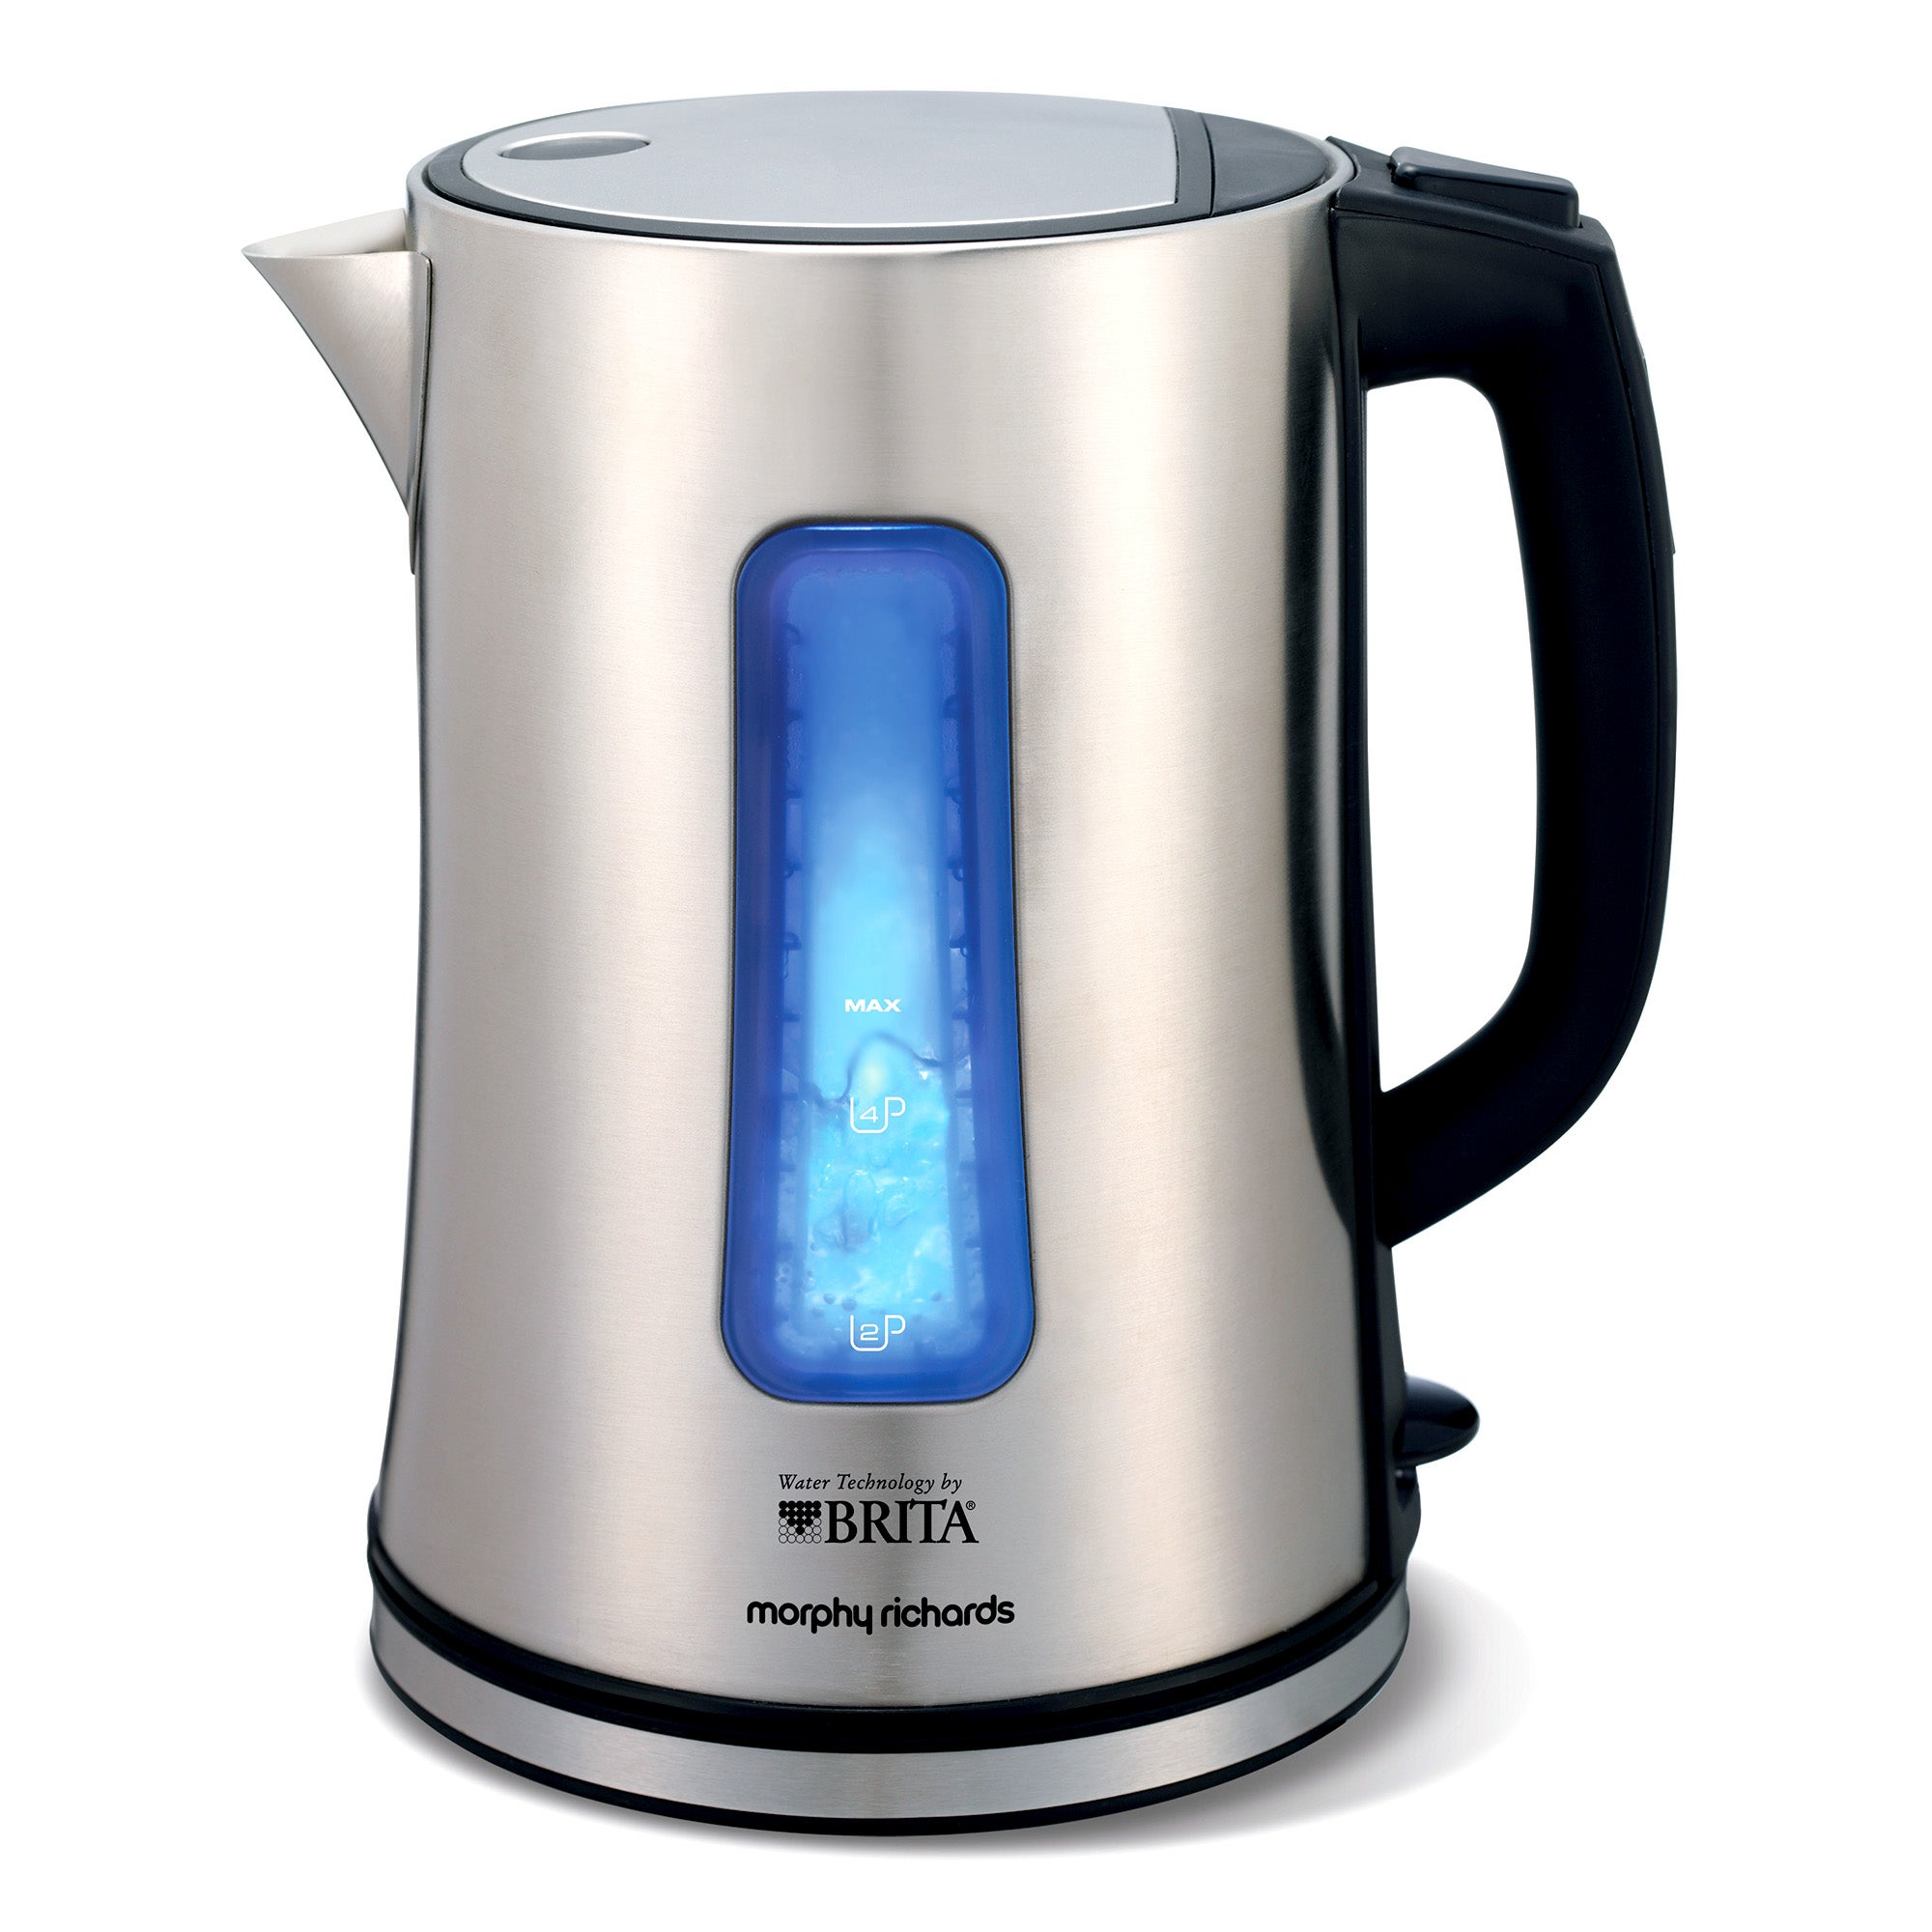 Morphy Richards Accents 43960 Brita Filter Stainless Steel Silver Jug Kettle